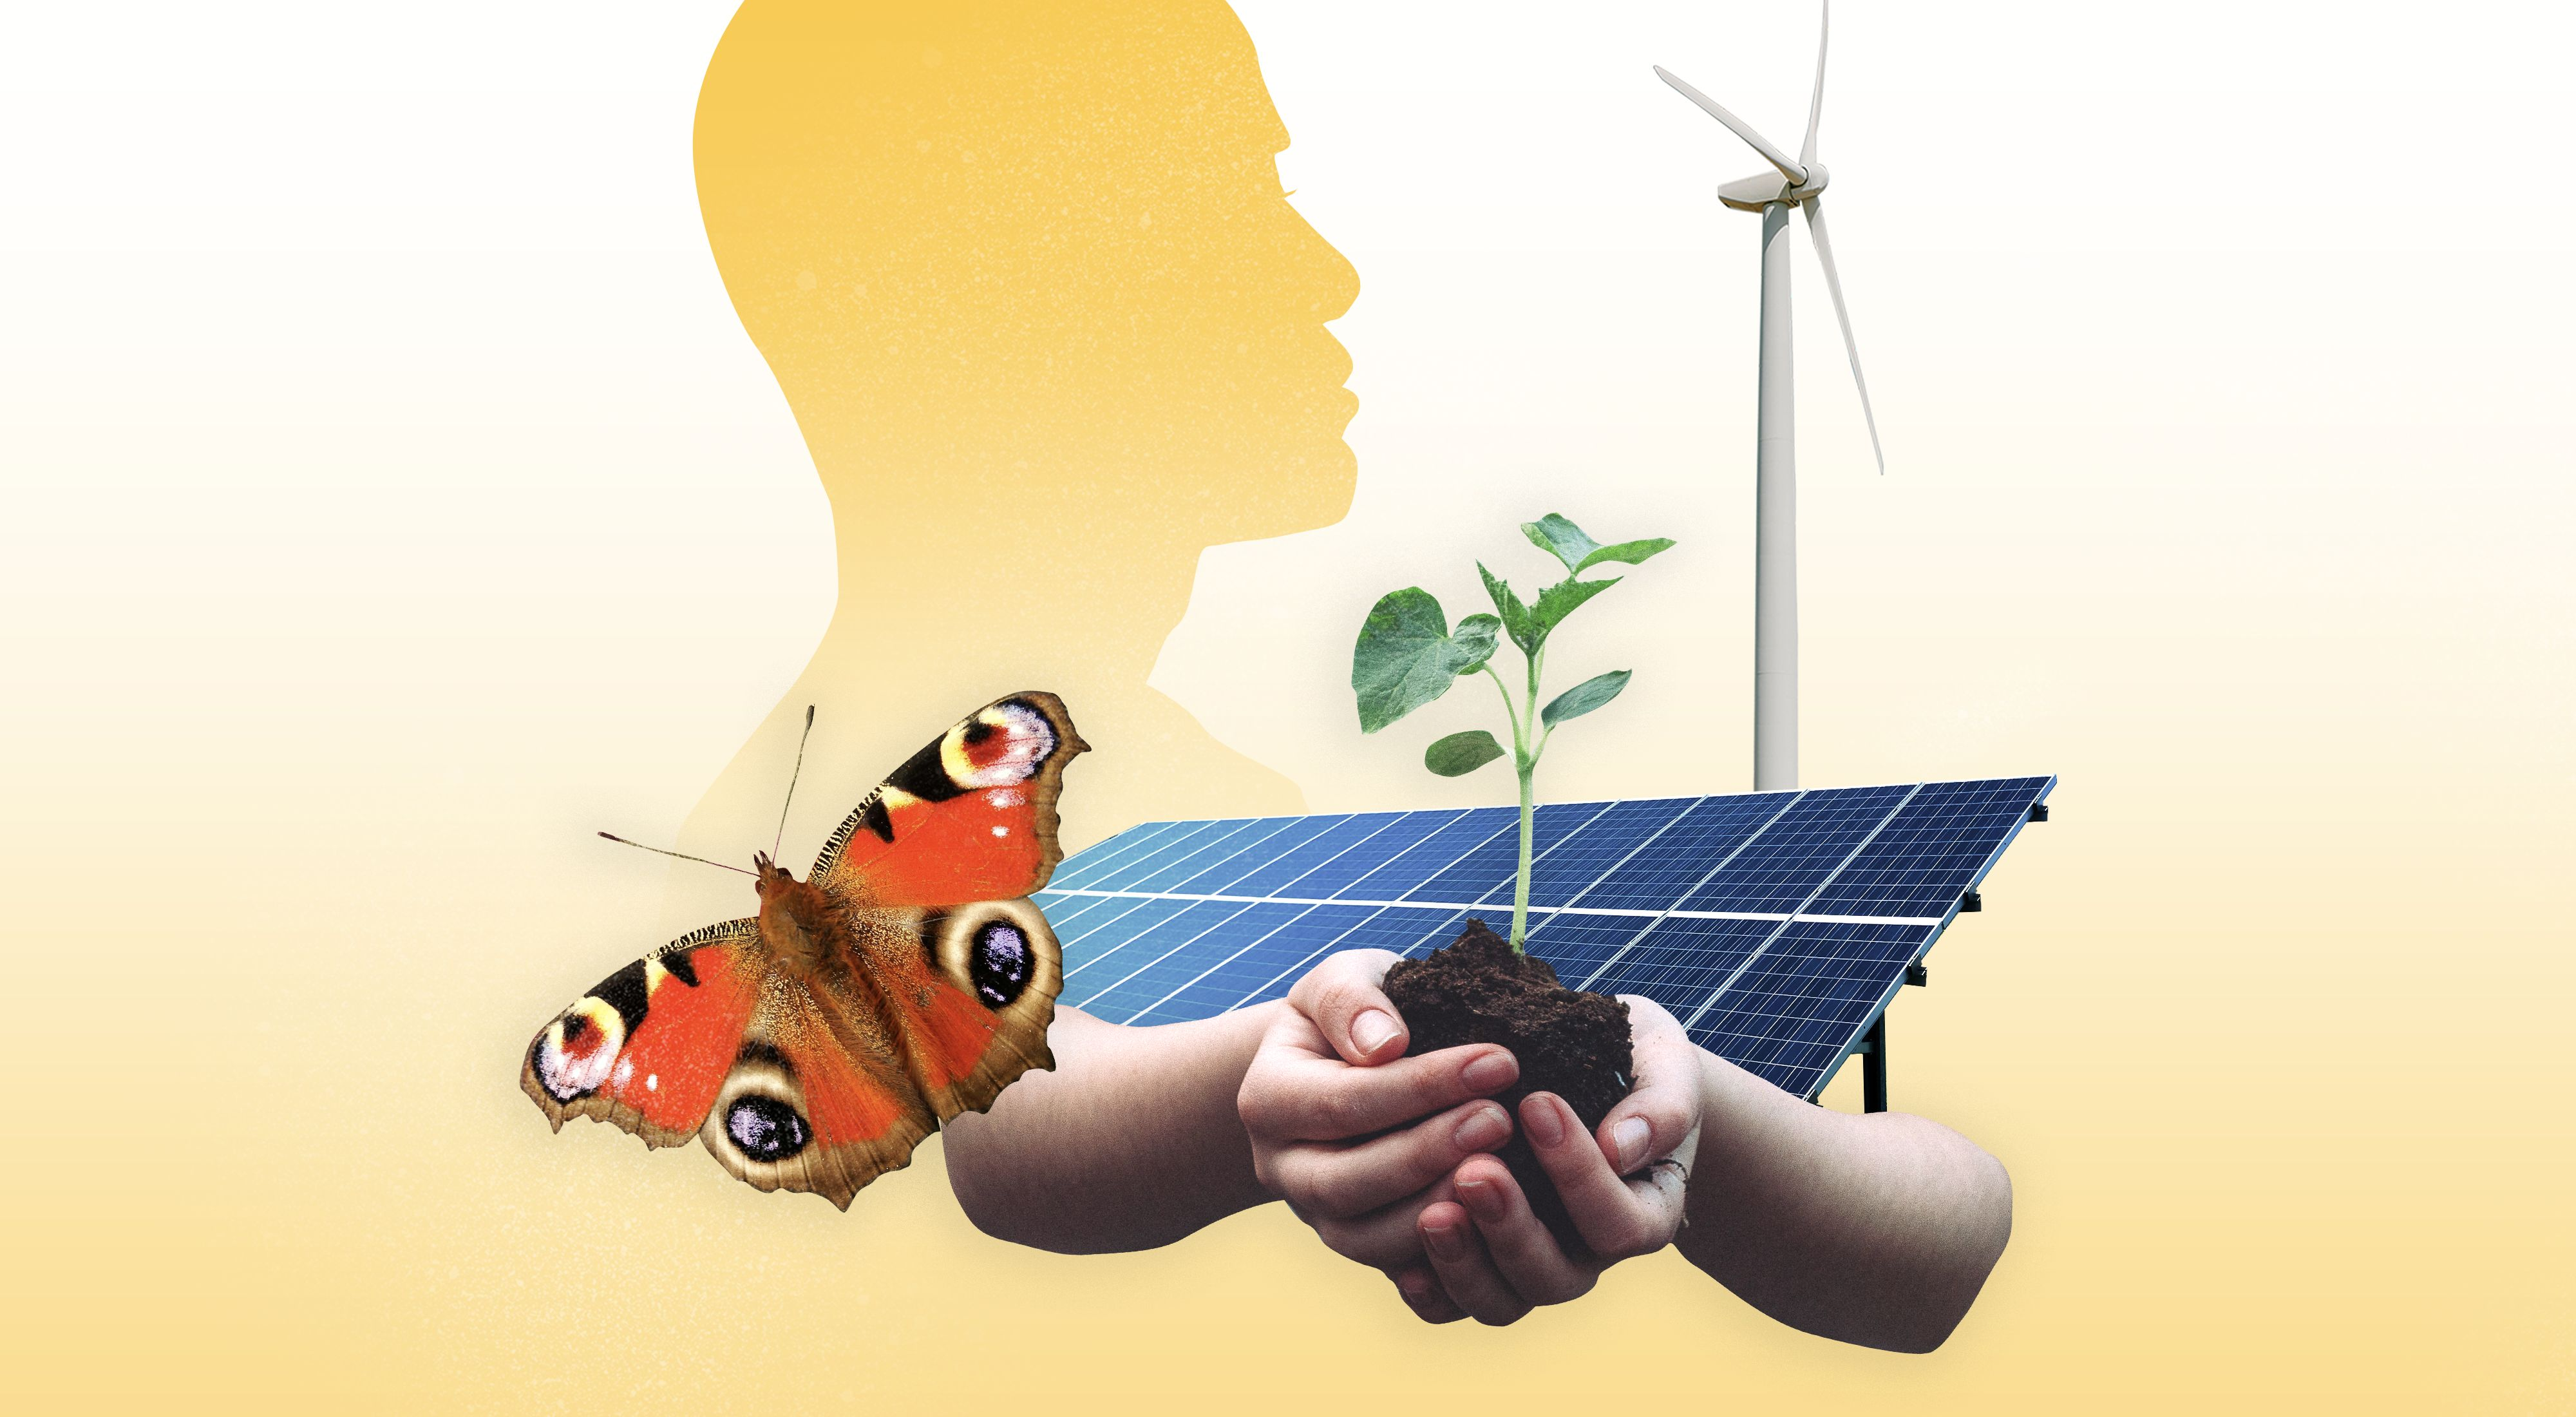 Graphic drawing of a solar panel, wind turbine, butterfly, and plant growing in soil in hands.